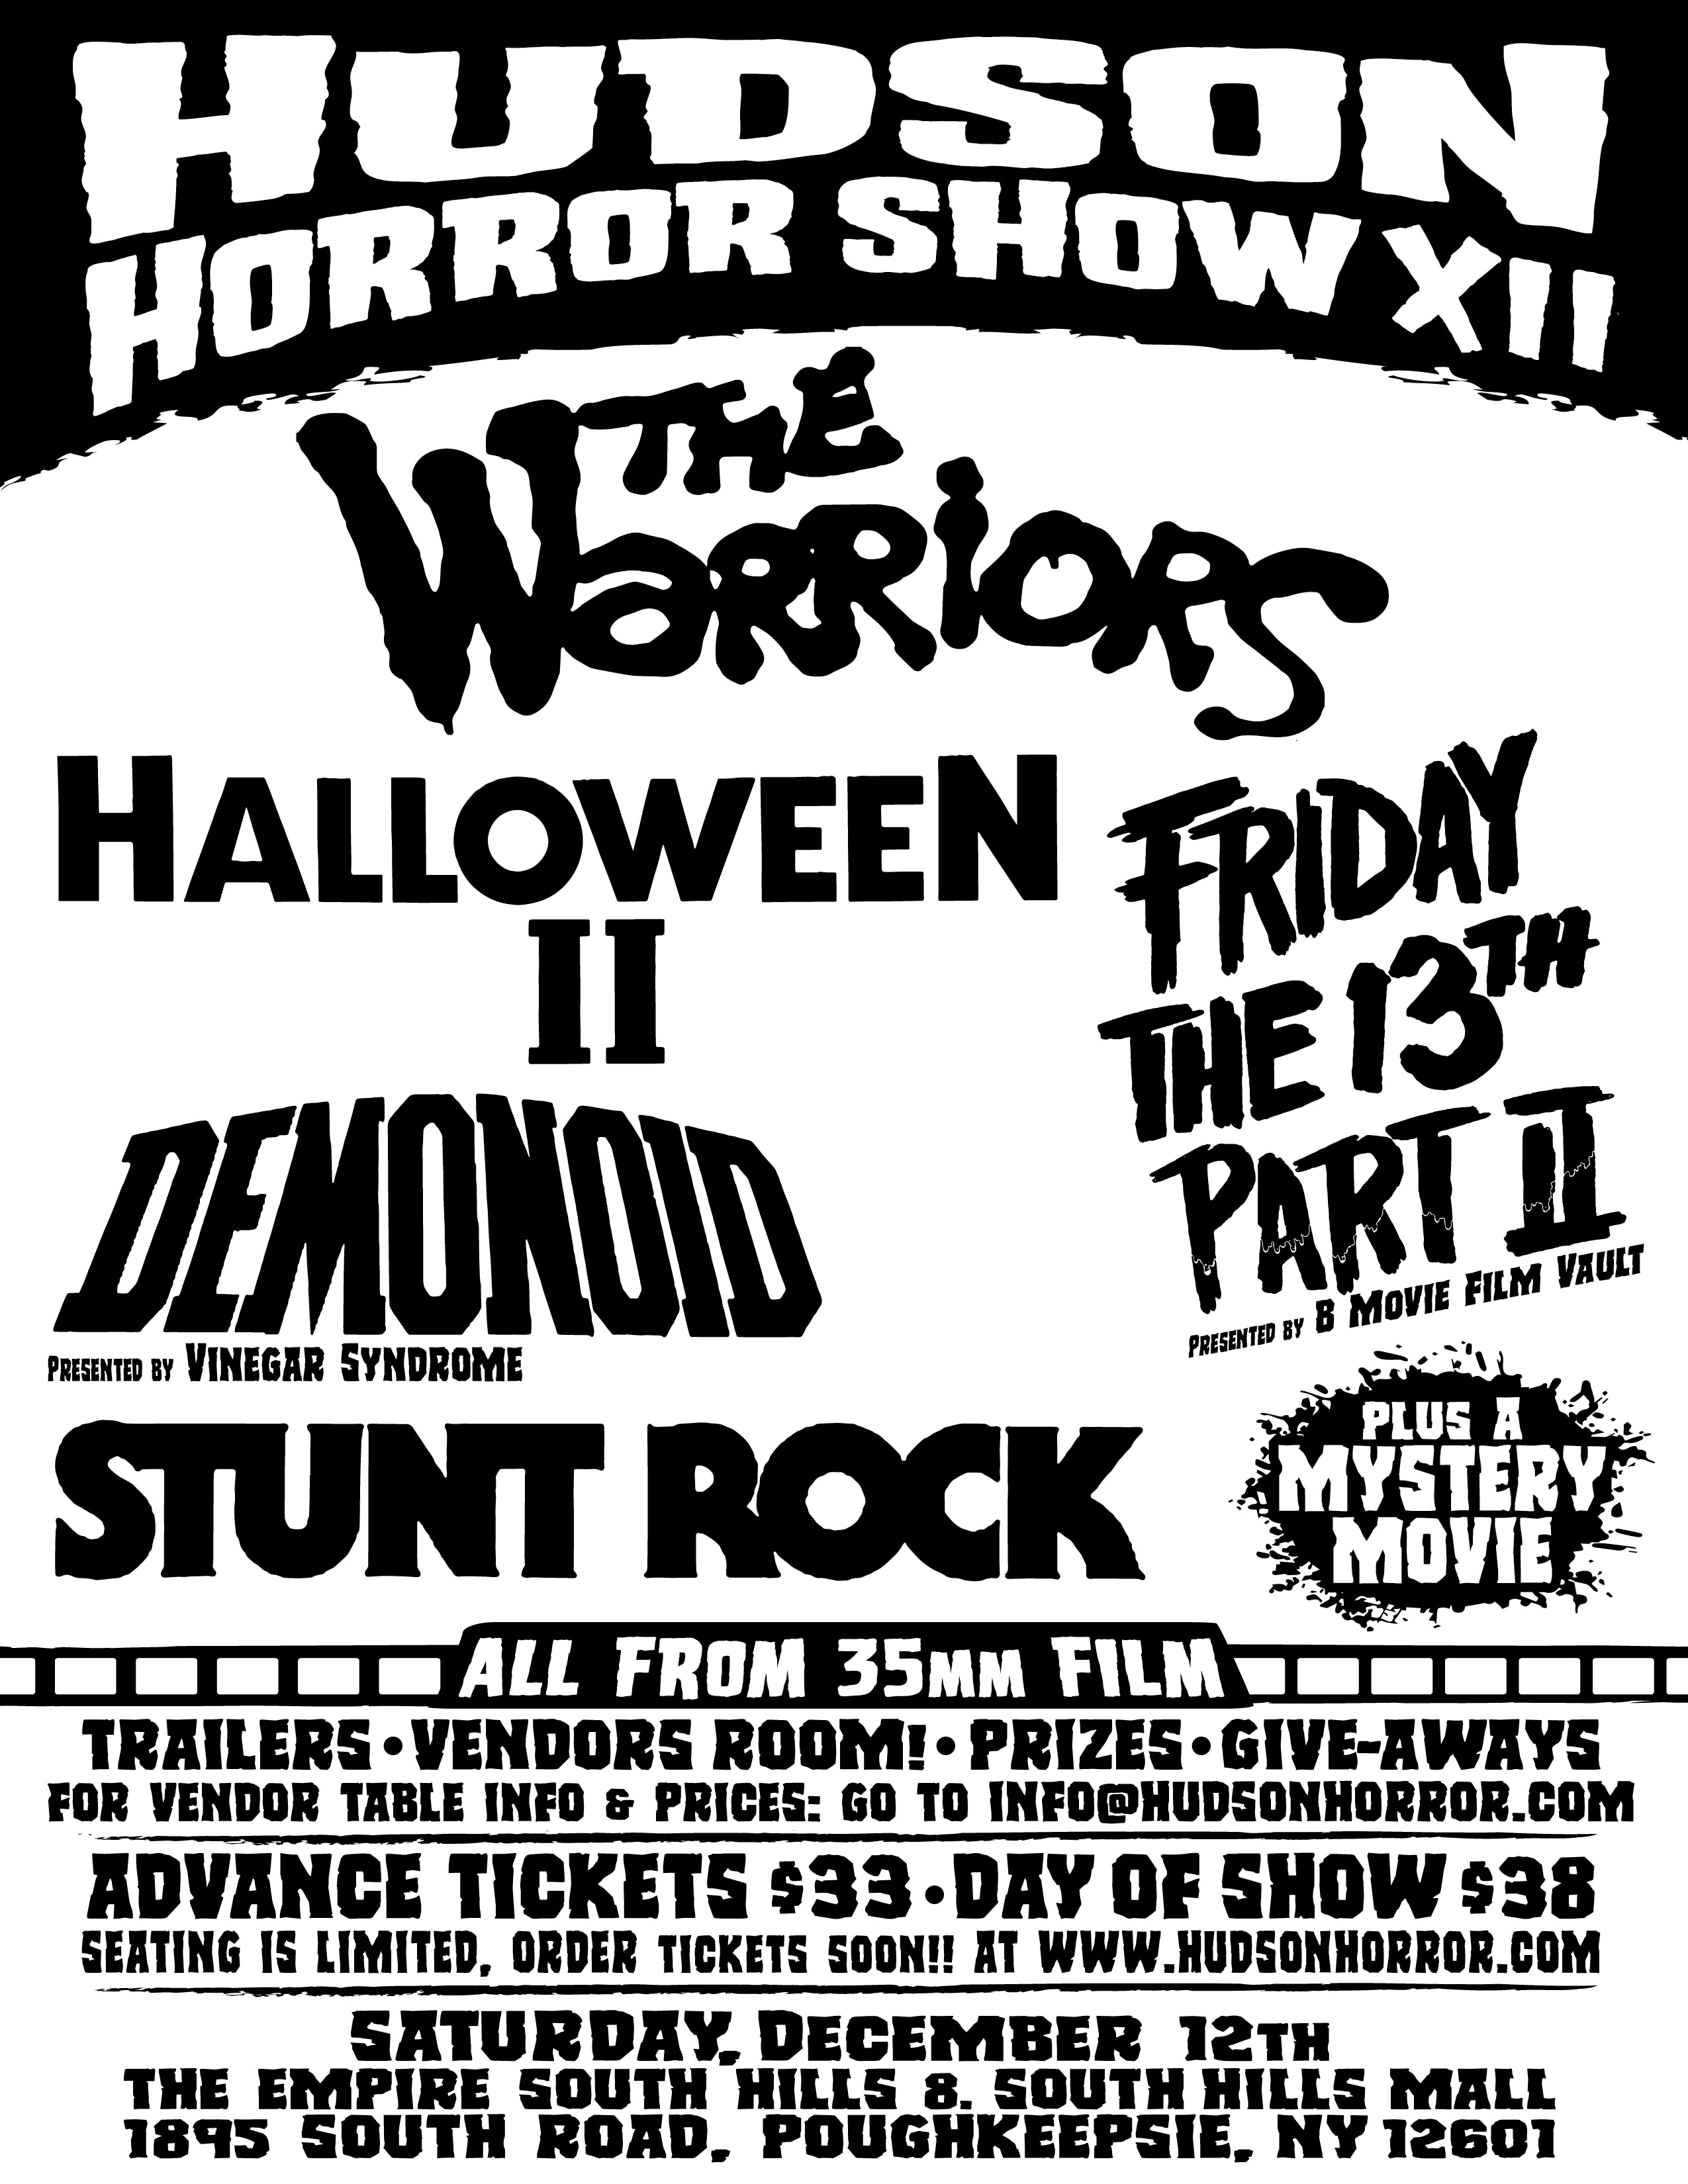 HHS XII flyer rev 01 - Lineup for Hudson Horror Show XII Announced; Tickets Going Fast